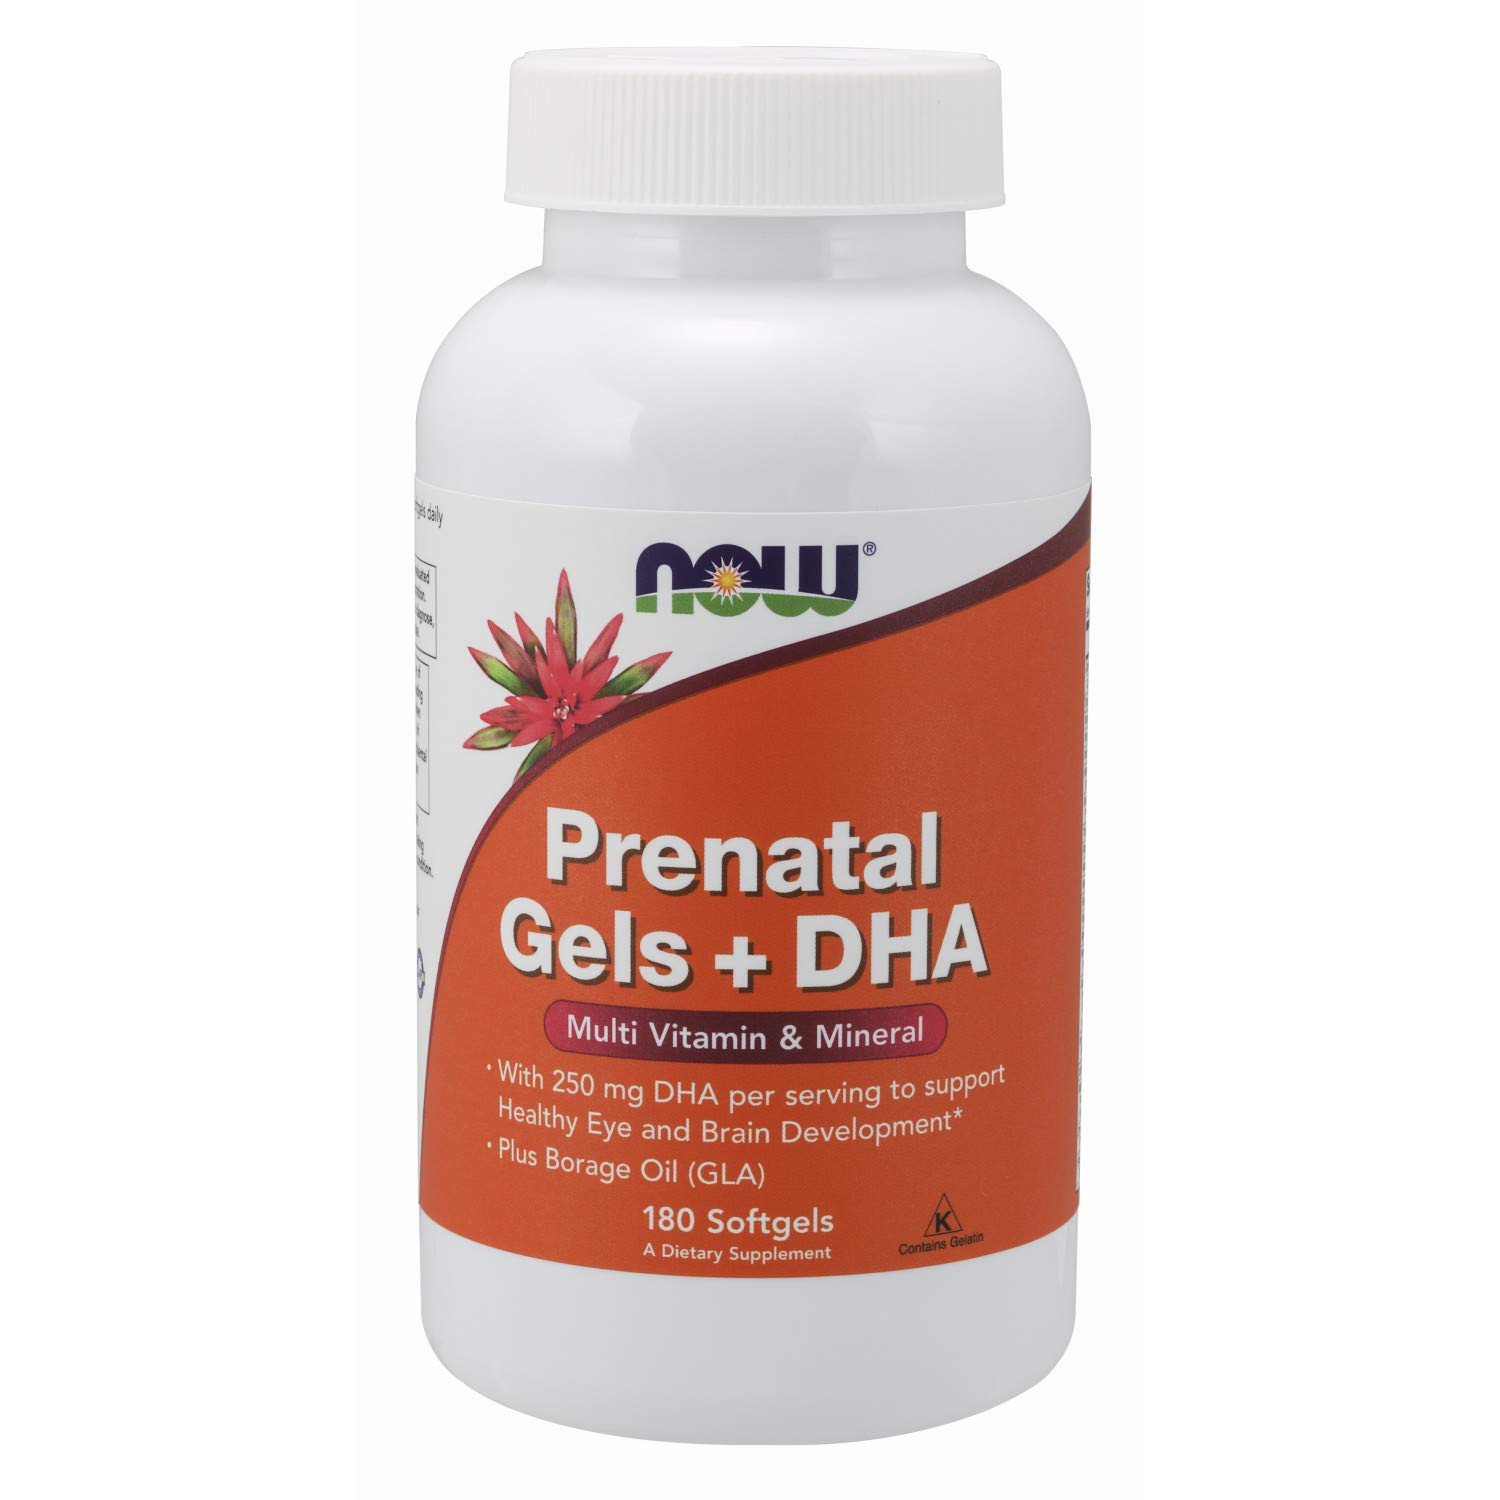 NOW Supplements, Prenatal Gels + DHA with 250 mg DHA per serving, plus Borage Oil (GLA), 180 Softgels by NOW Foods